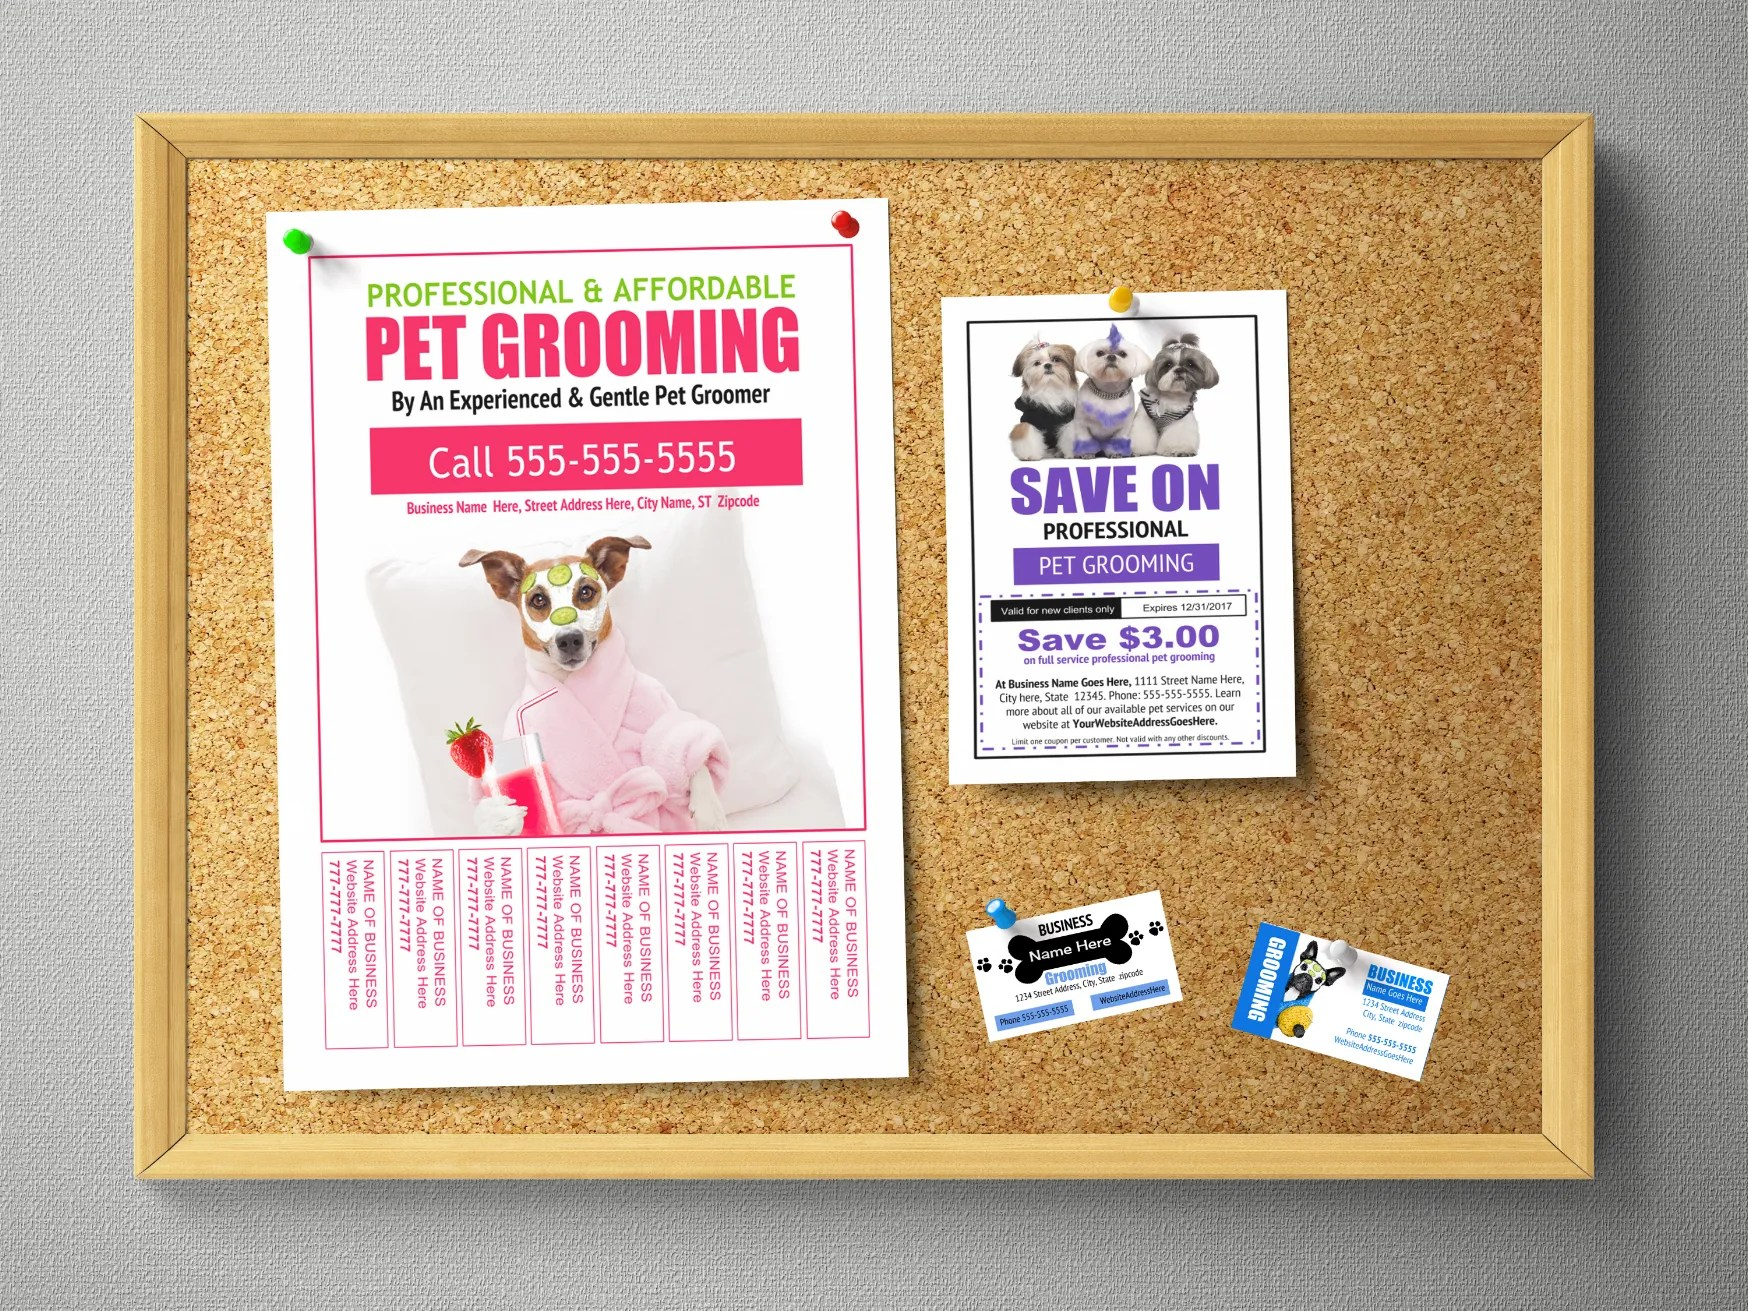 Pet Grooming Business Marketing Templates